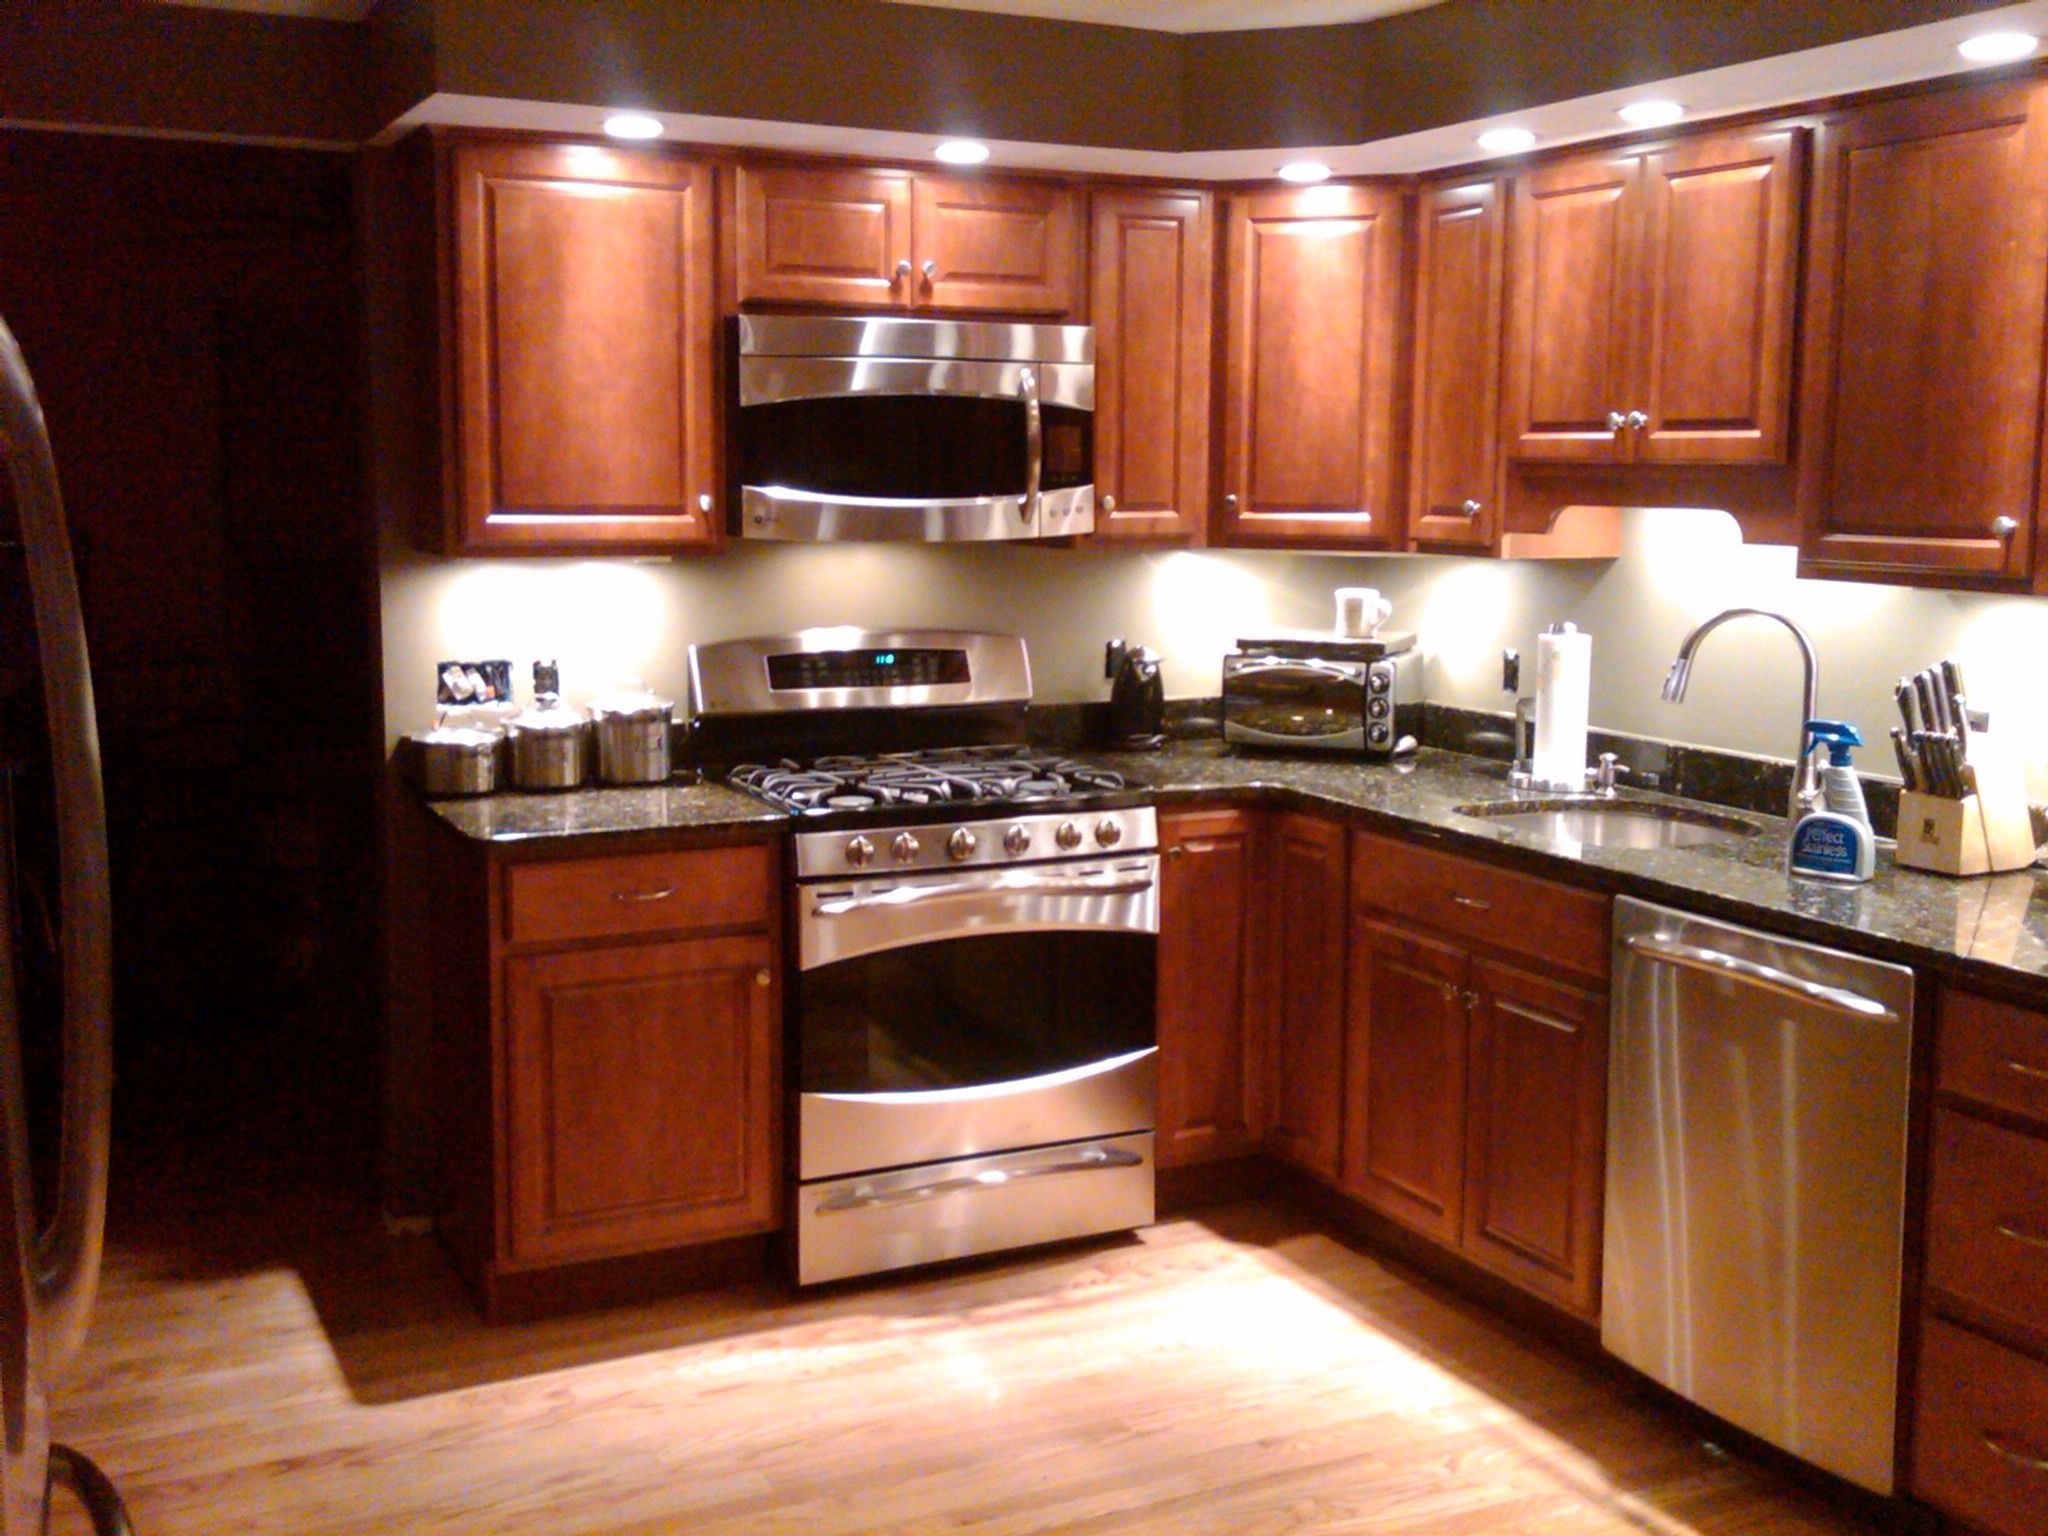 Pot Lights Under Kitchen Cabinets With Images Kitchen Cabinet Design Kitchen Lighting Design Kitchen Recessed Lighting